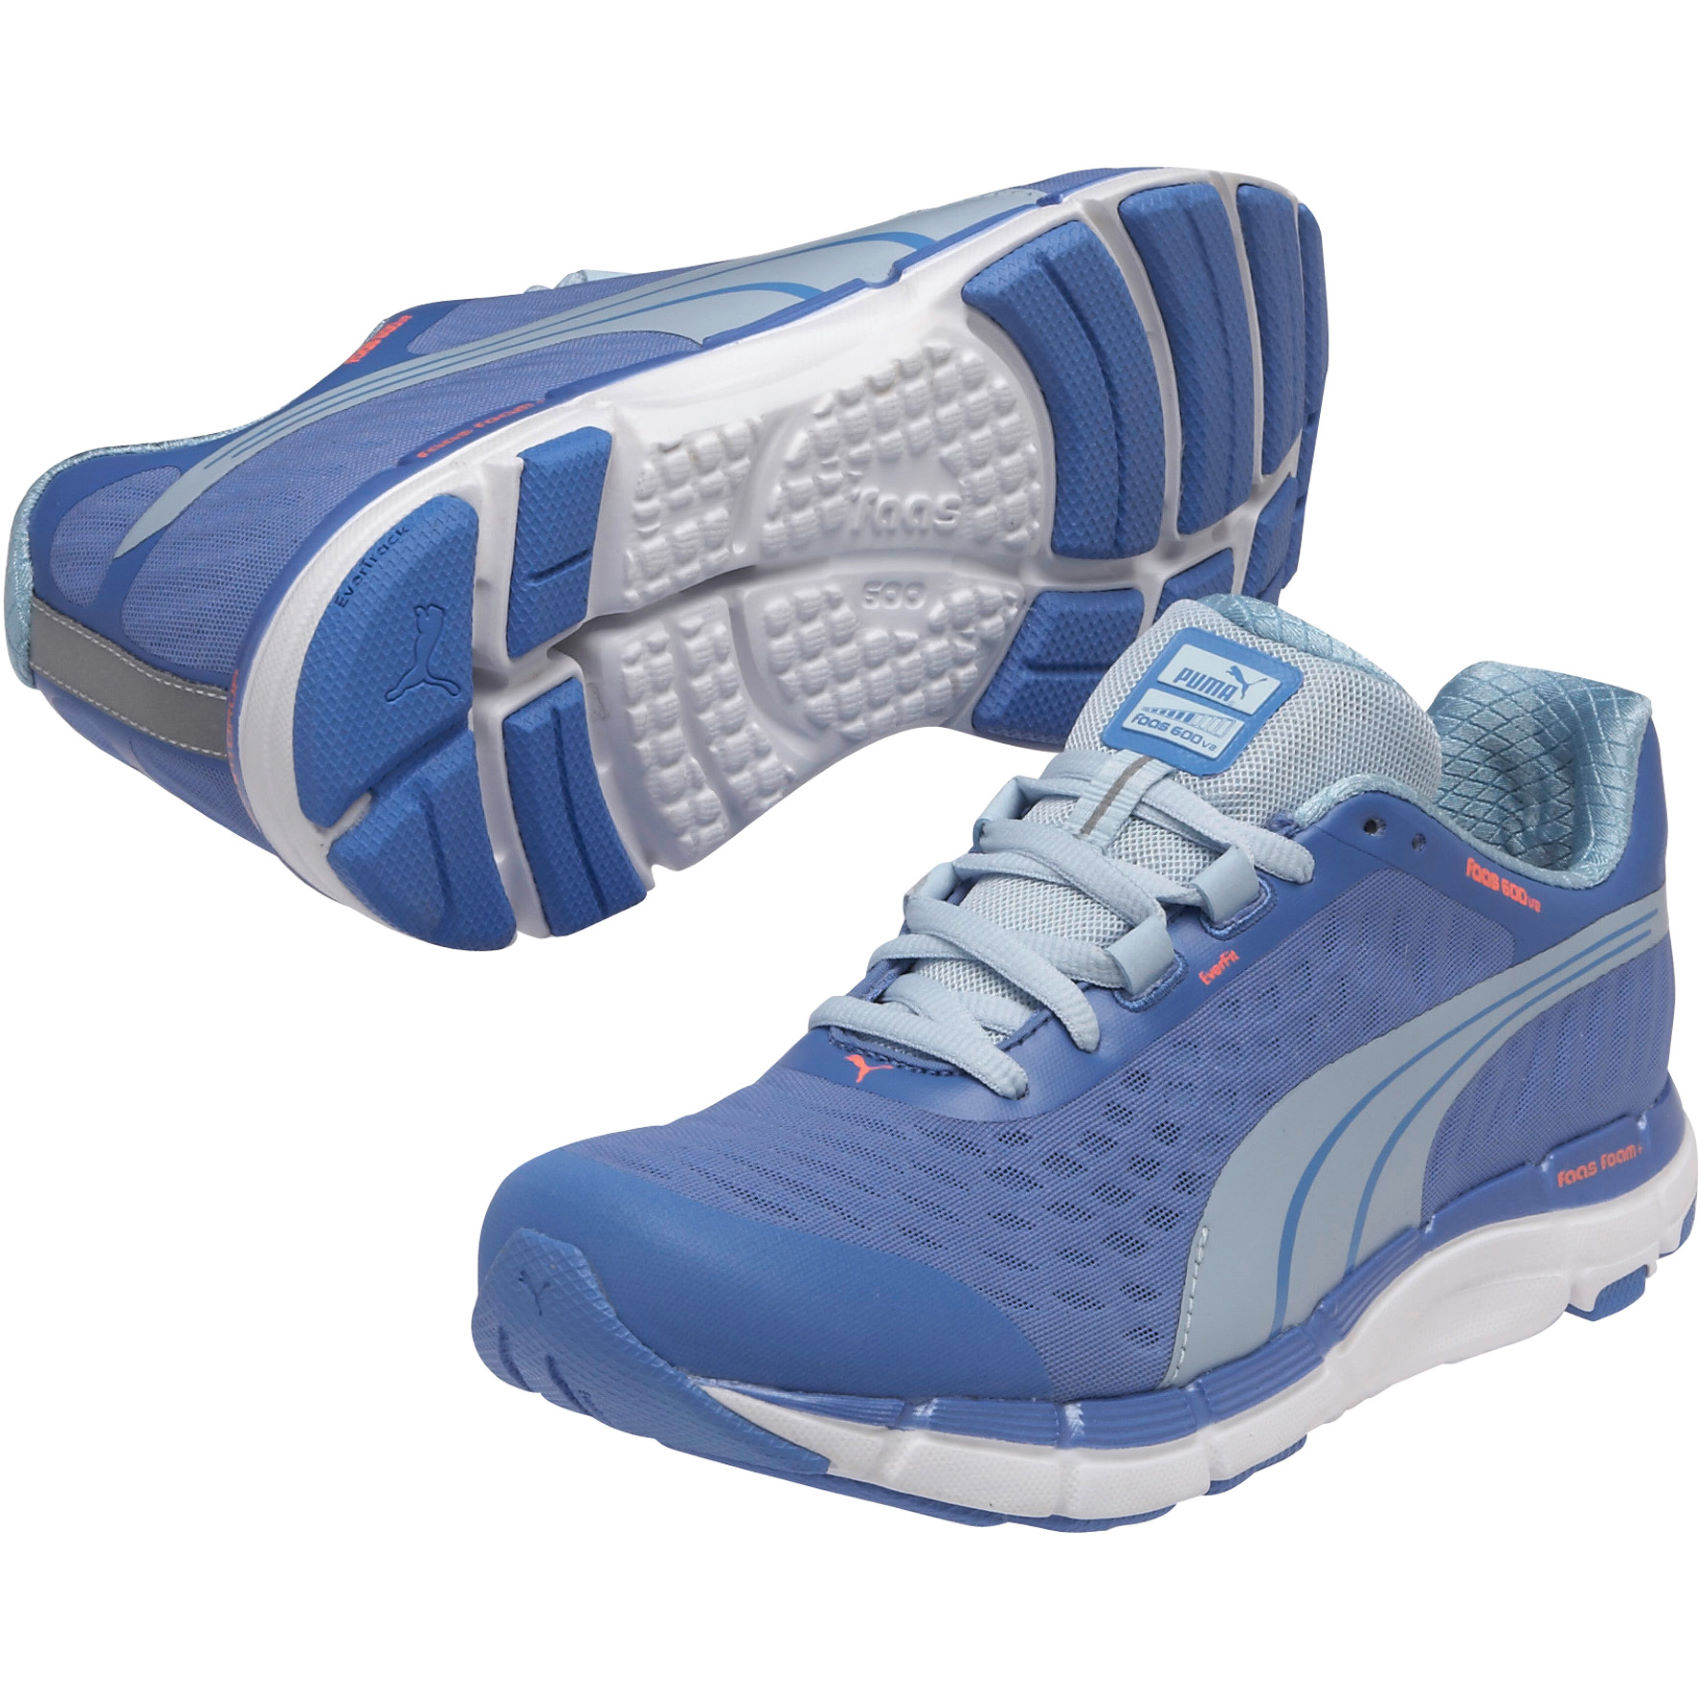 Puma Ladies Running Shoes cv-writing-jobs-recruitment-uk.co.uk 2a0944c6e